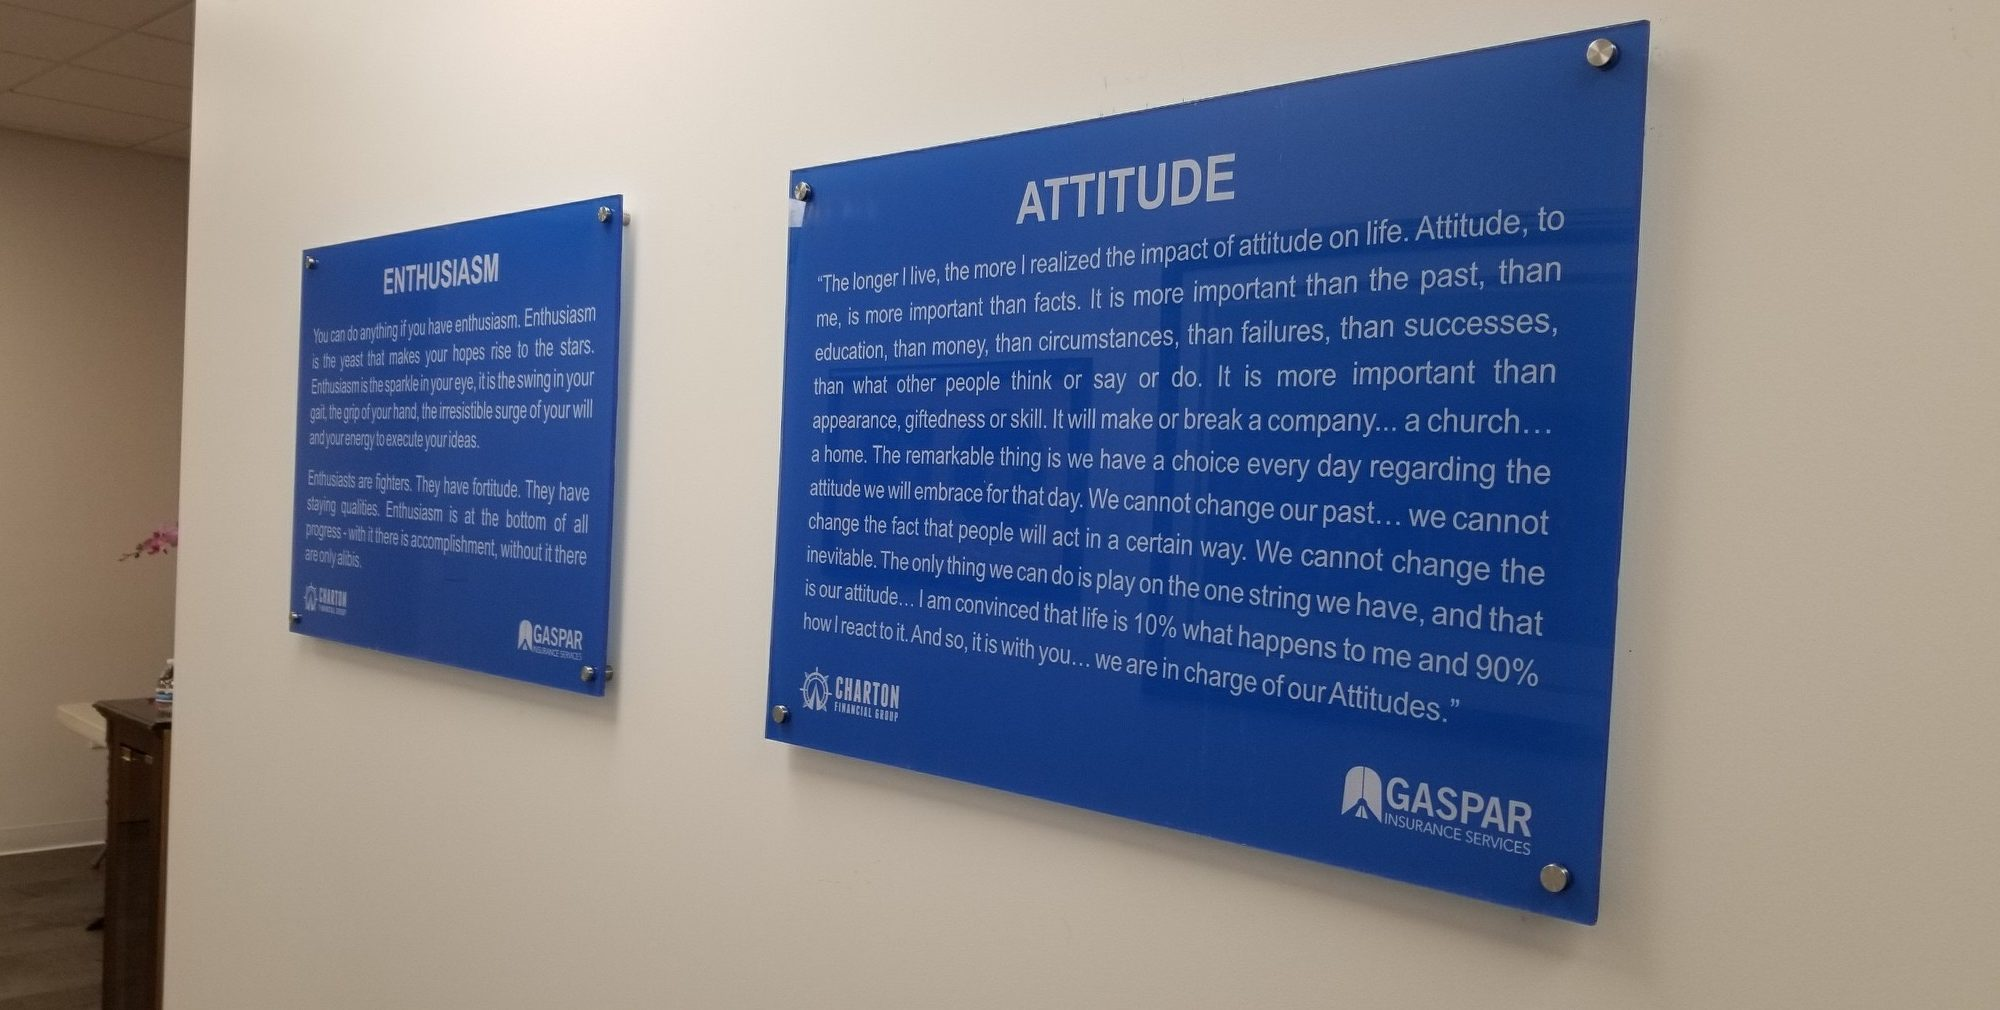 Wall Quotes Signs, gaspar insurance lobby sign, simi valley sign company, premium sign solutions los angeles, lobby sign company simi valley, wall sign simi valley, sign package for businesses